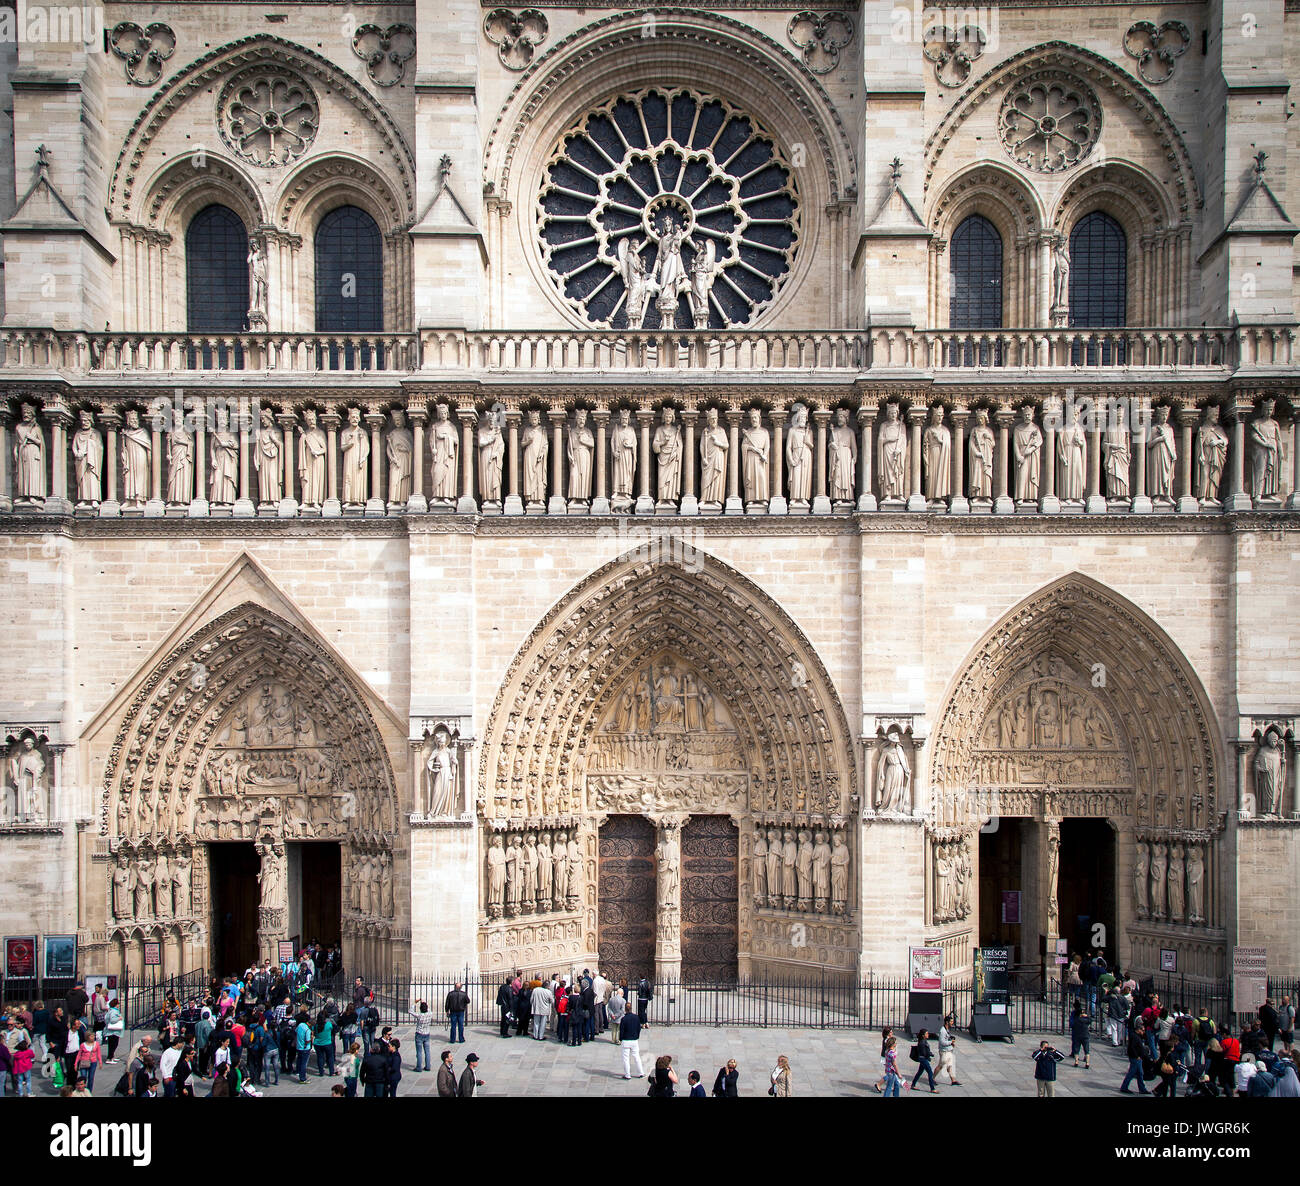 Front facade of Cathedral Notre Dame, Paris France - Stock Image